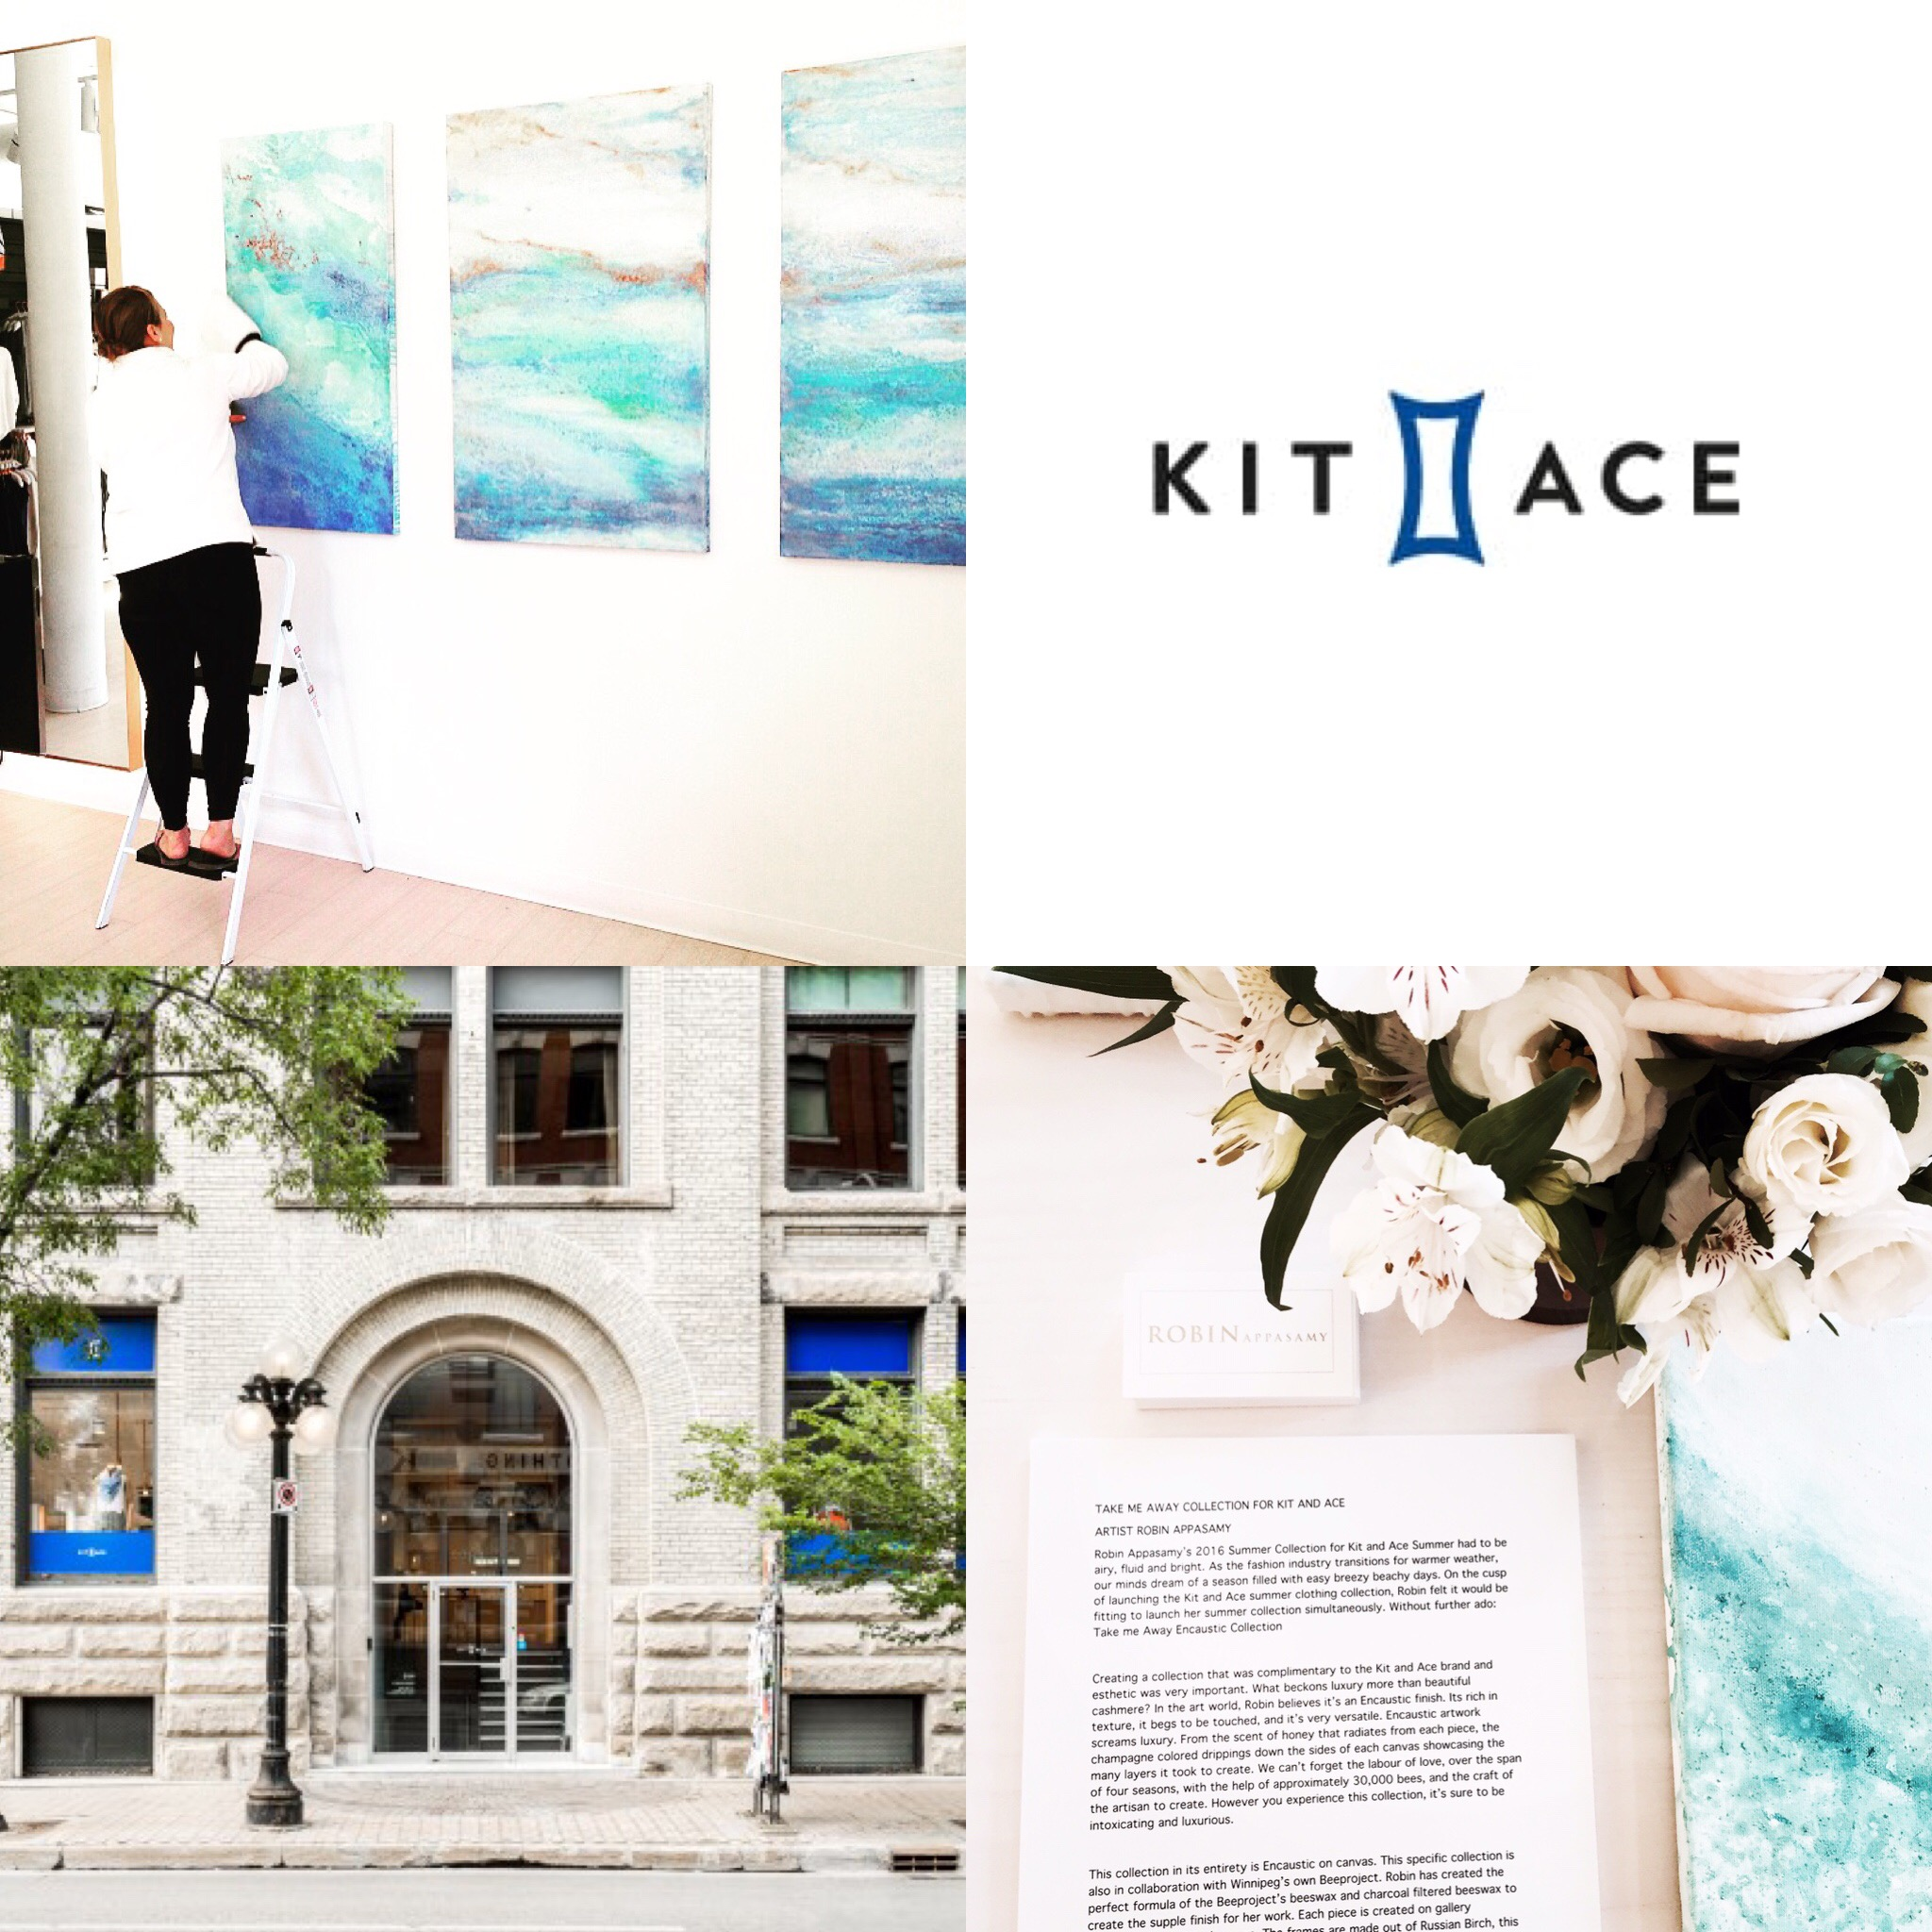 KIT AND ACE GLOBAL